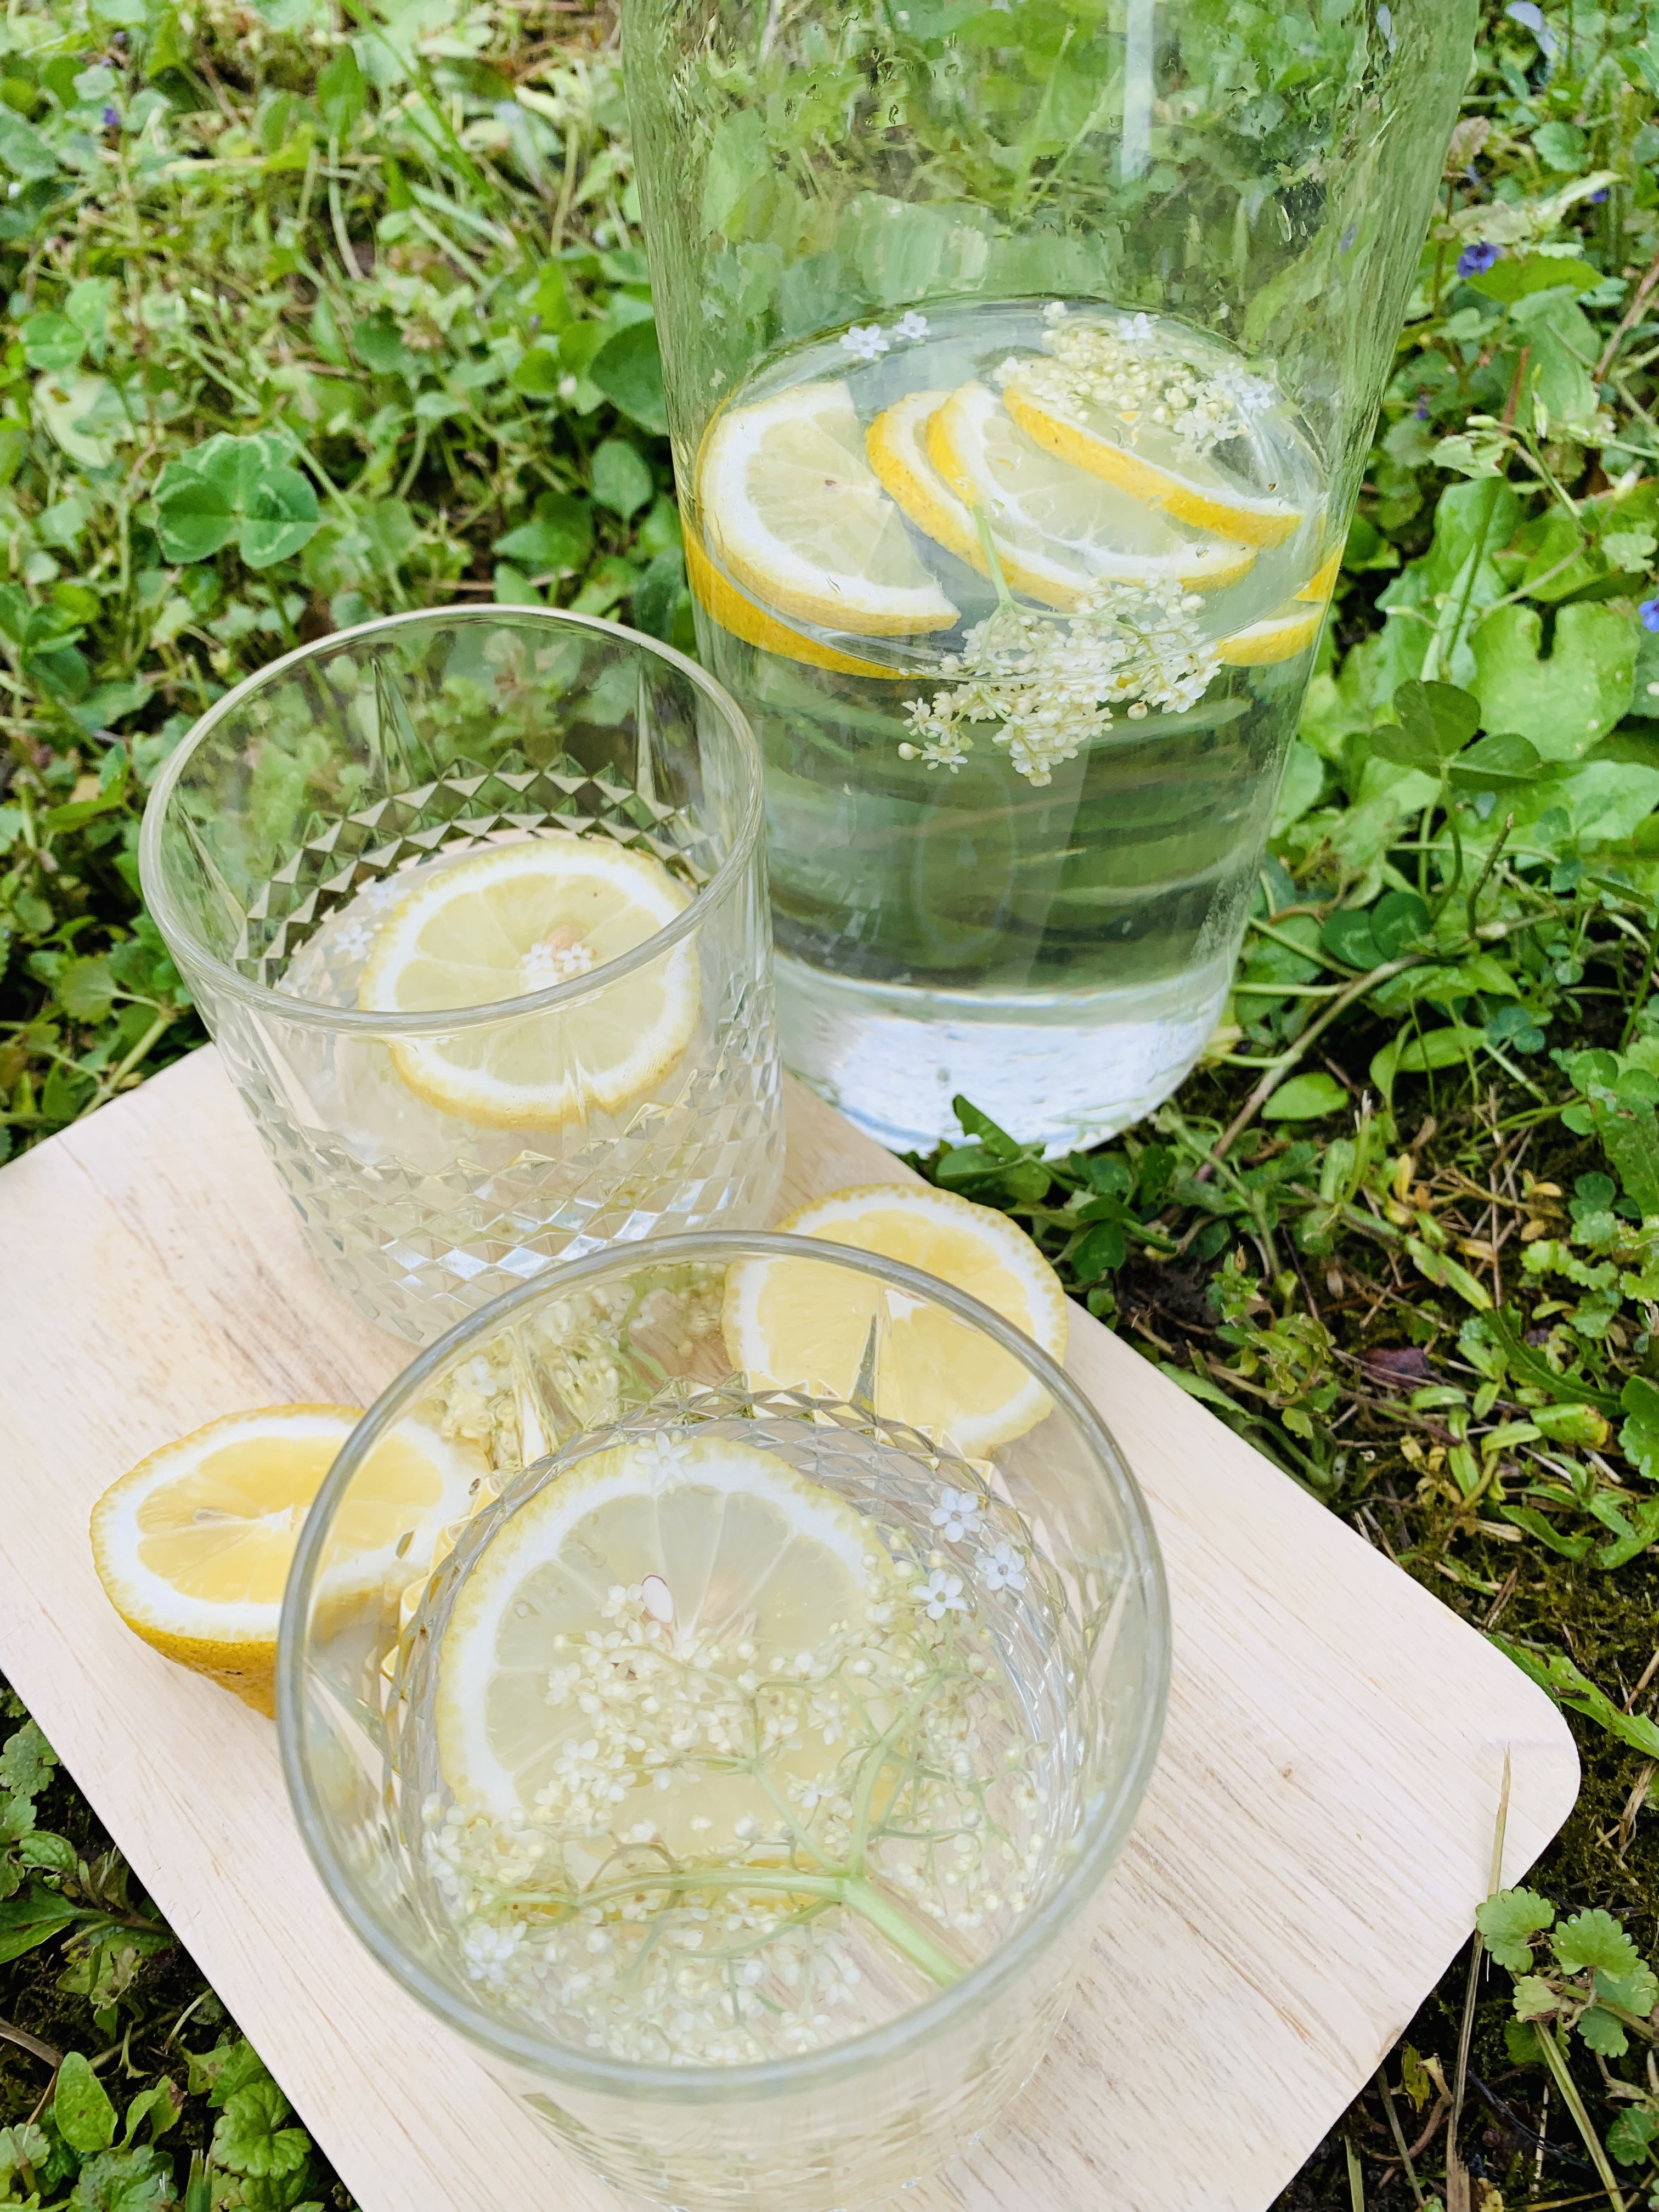 Picture of elderflower 0 calories and 0 carbs drink on the grass in the garden